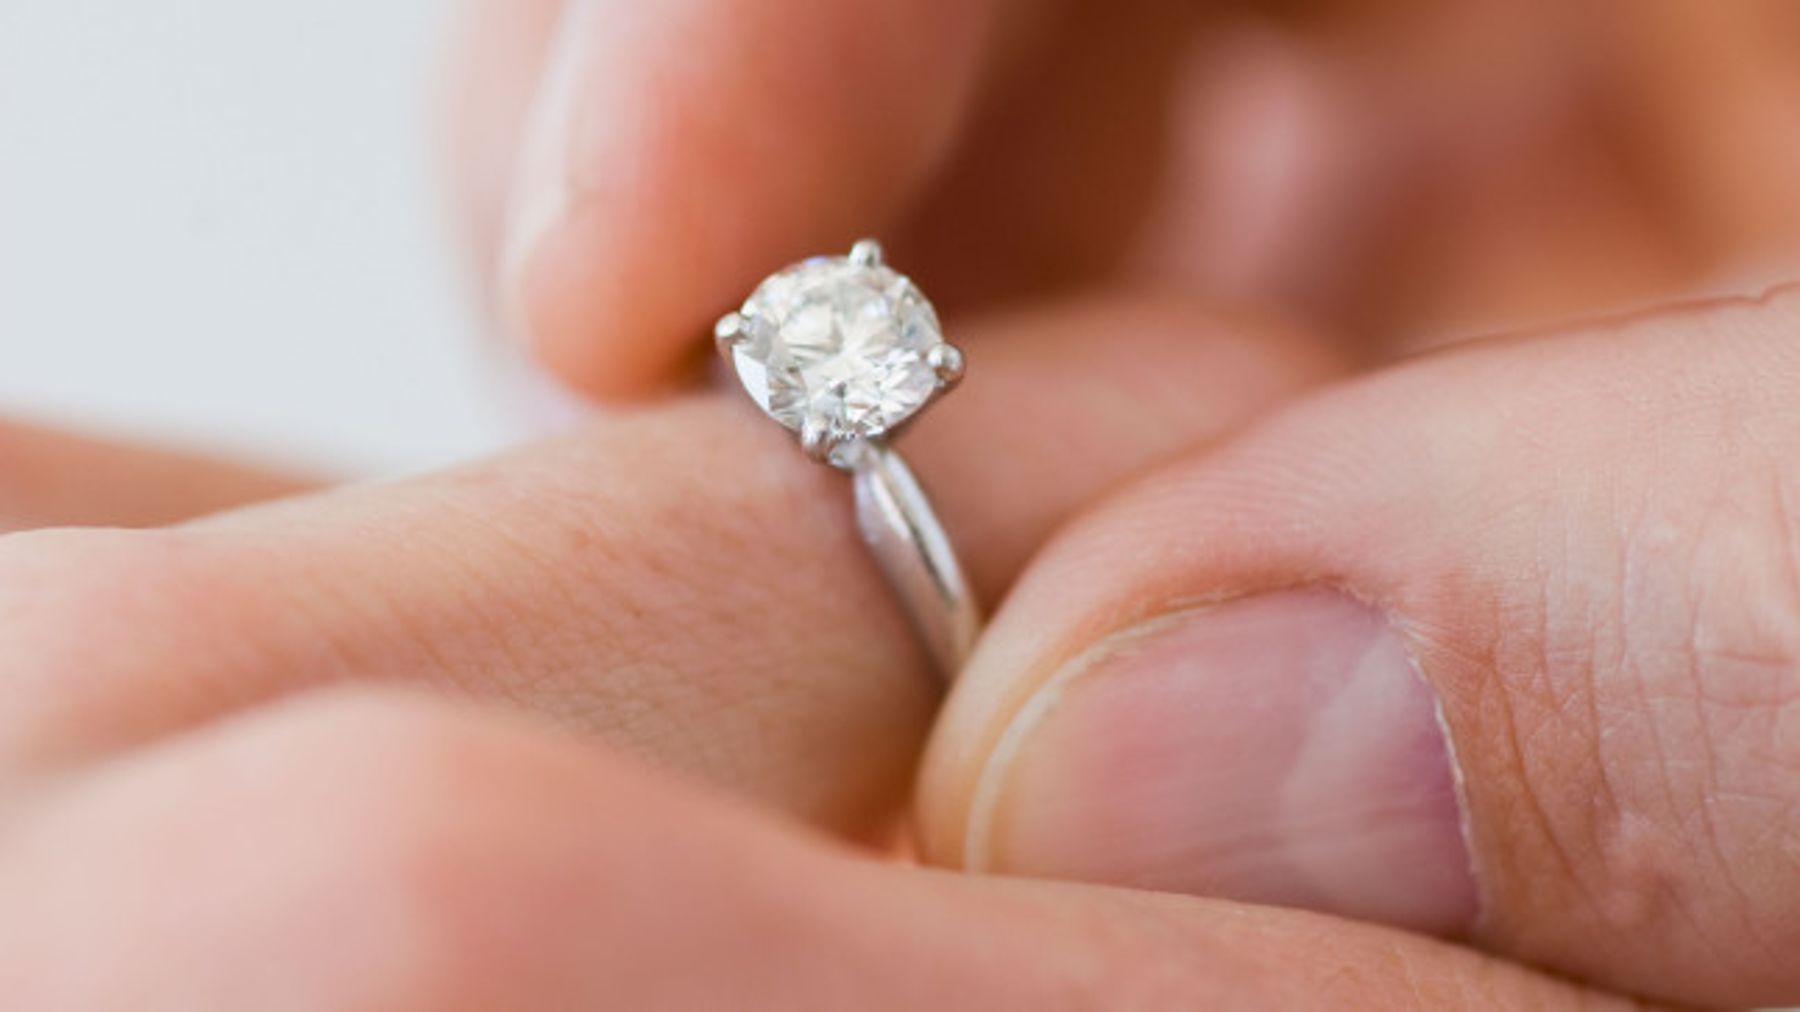 35a7616050f9b Fancy designing your own engagement ring online? Now you can… | Closer